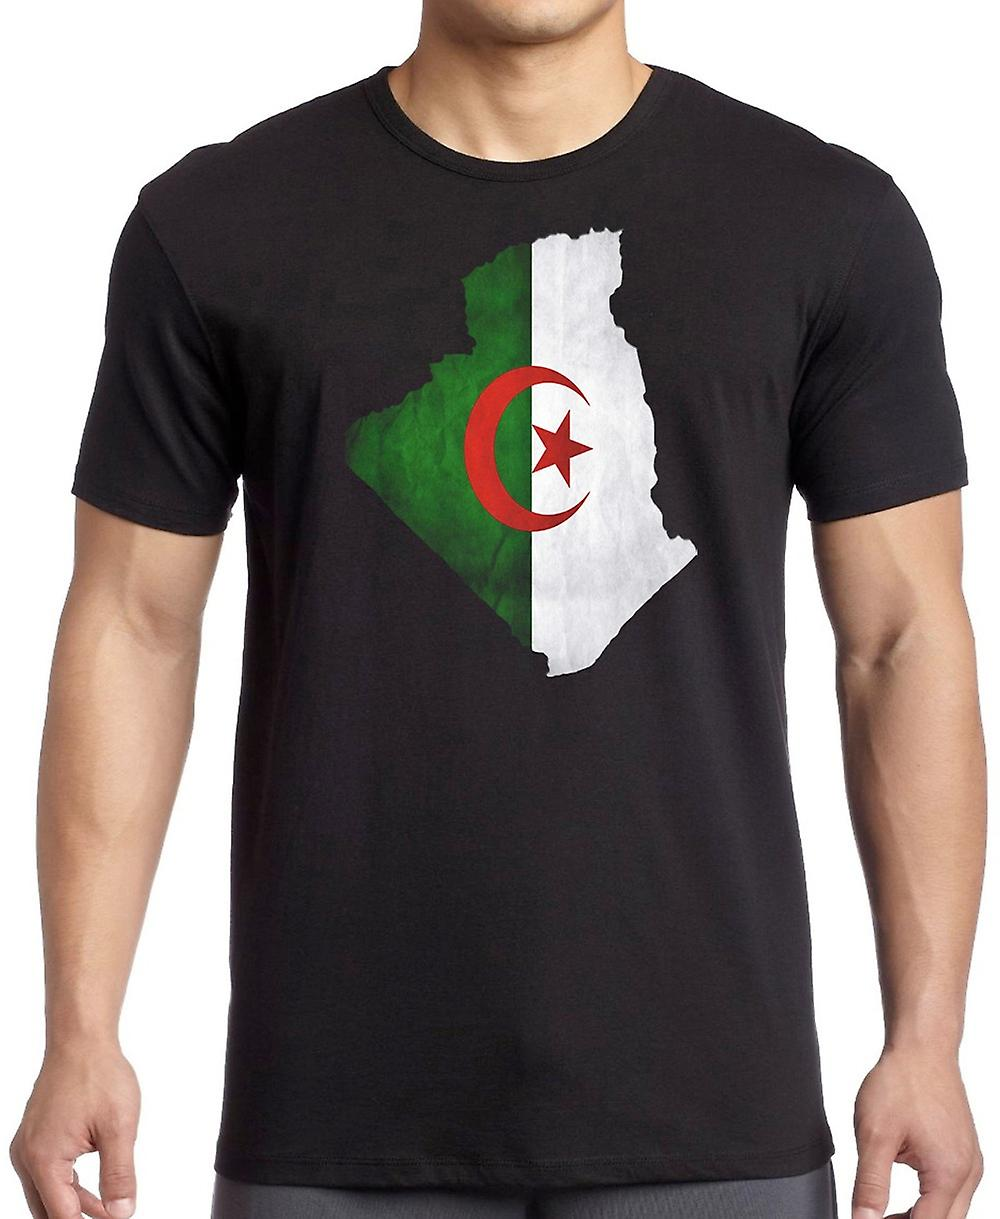 Algerian Algeria Flag Map T Shirt  - 5xl